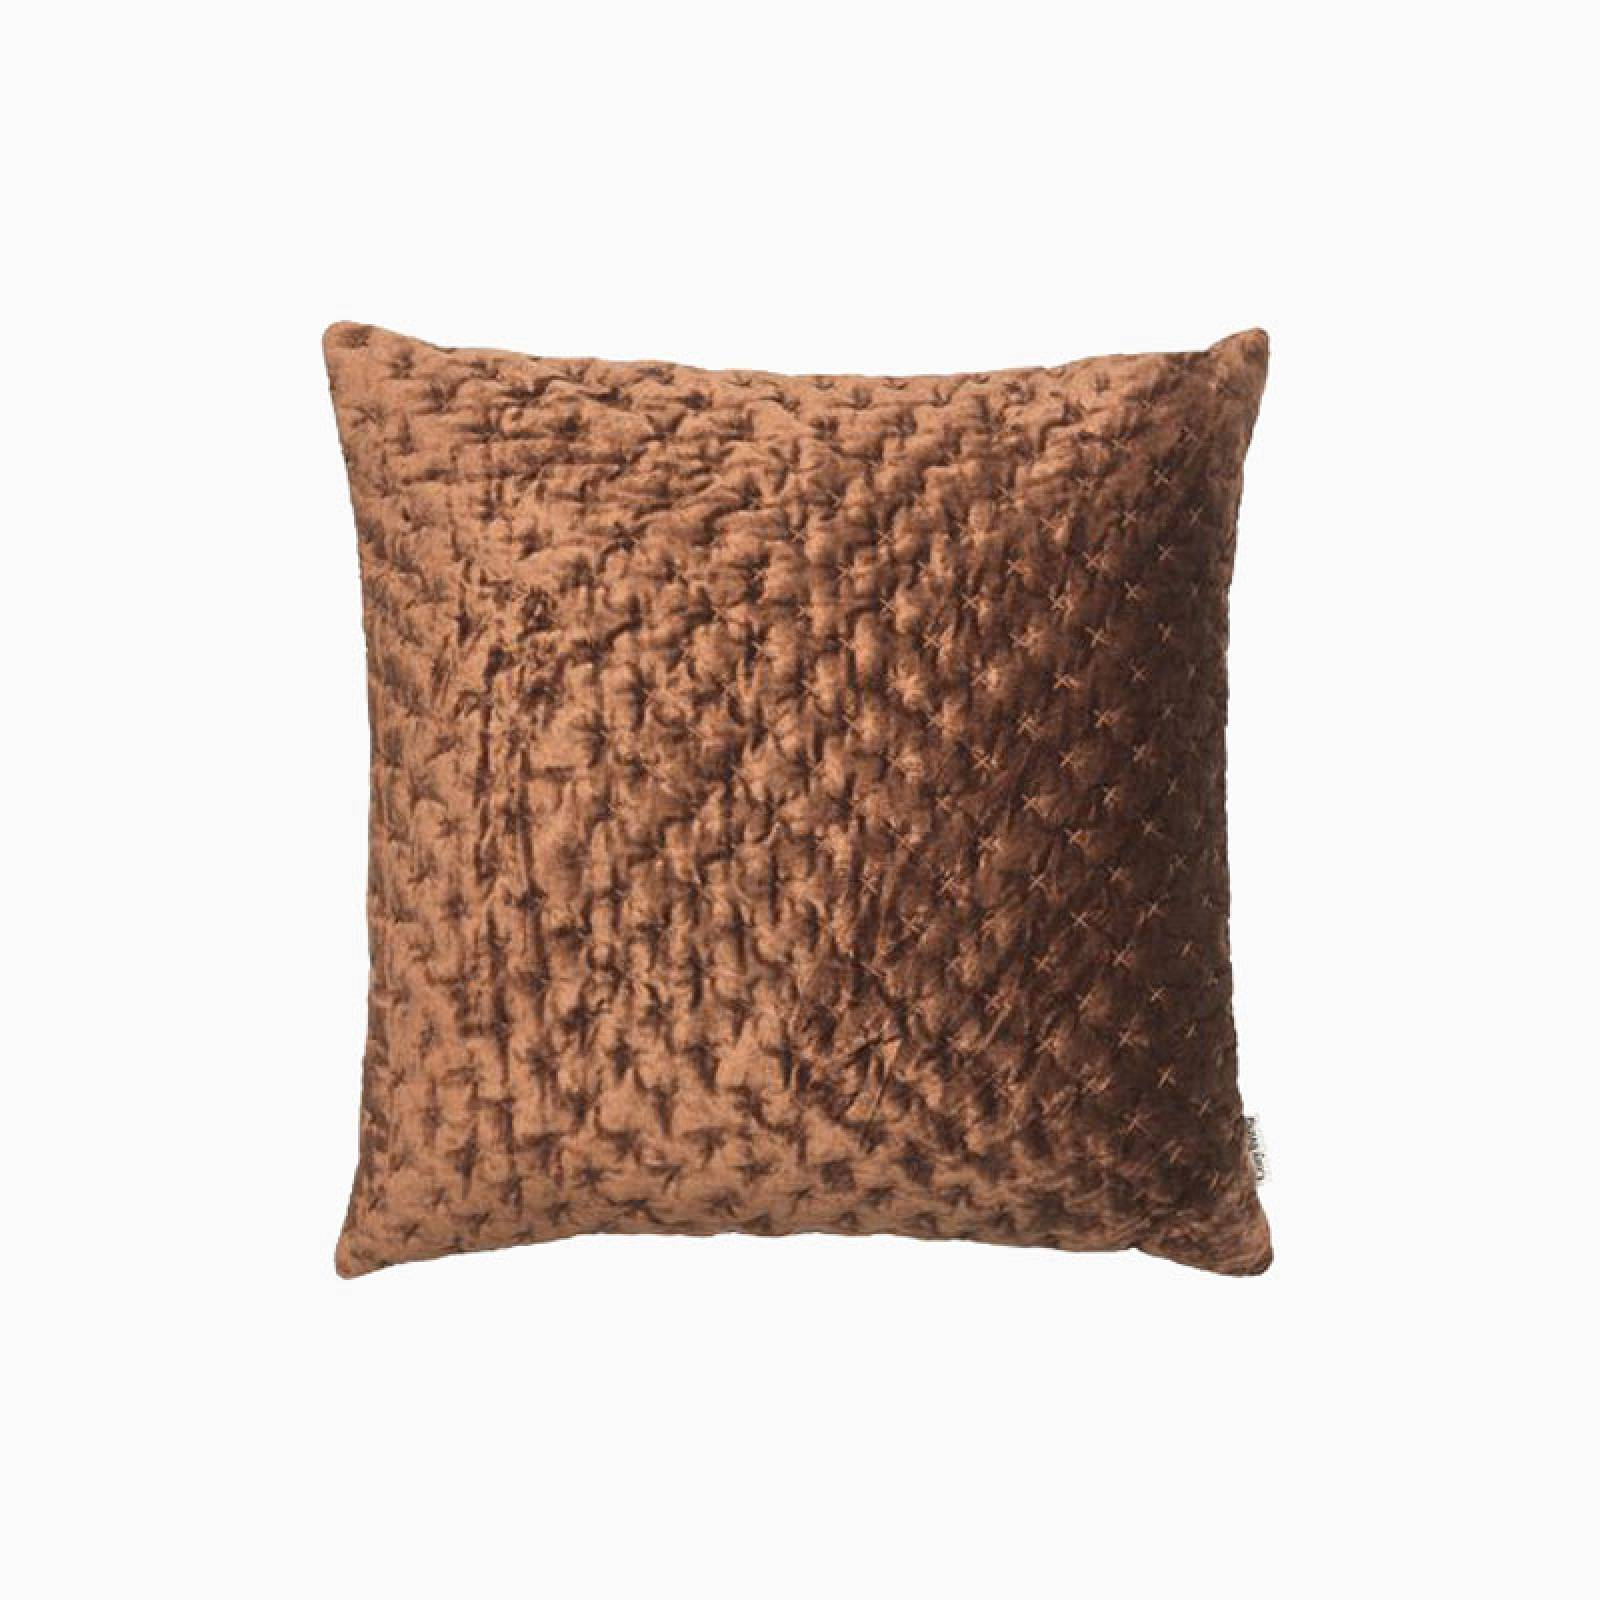 Square Velvet Embroidered Cushion - Mahogany thumbnails